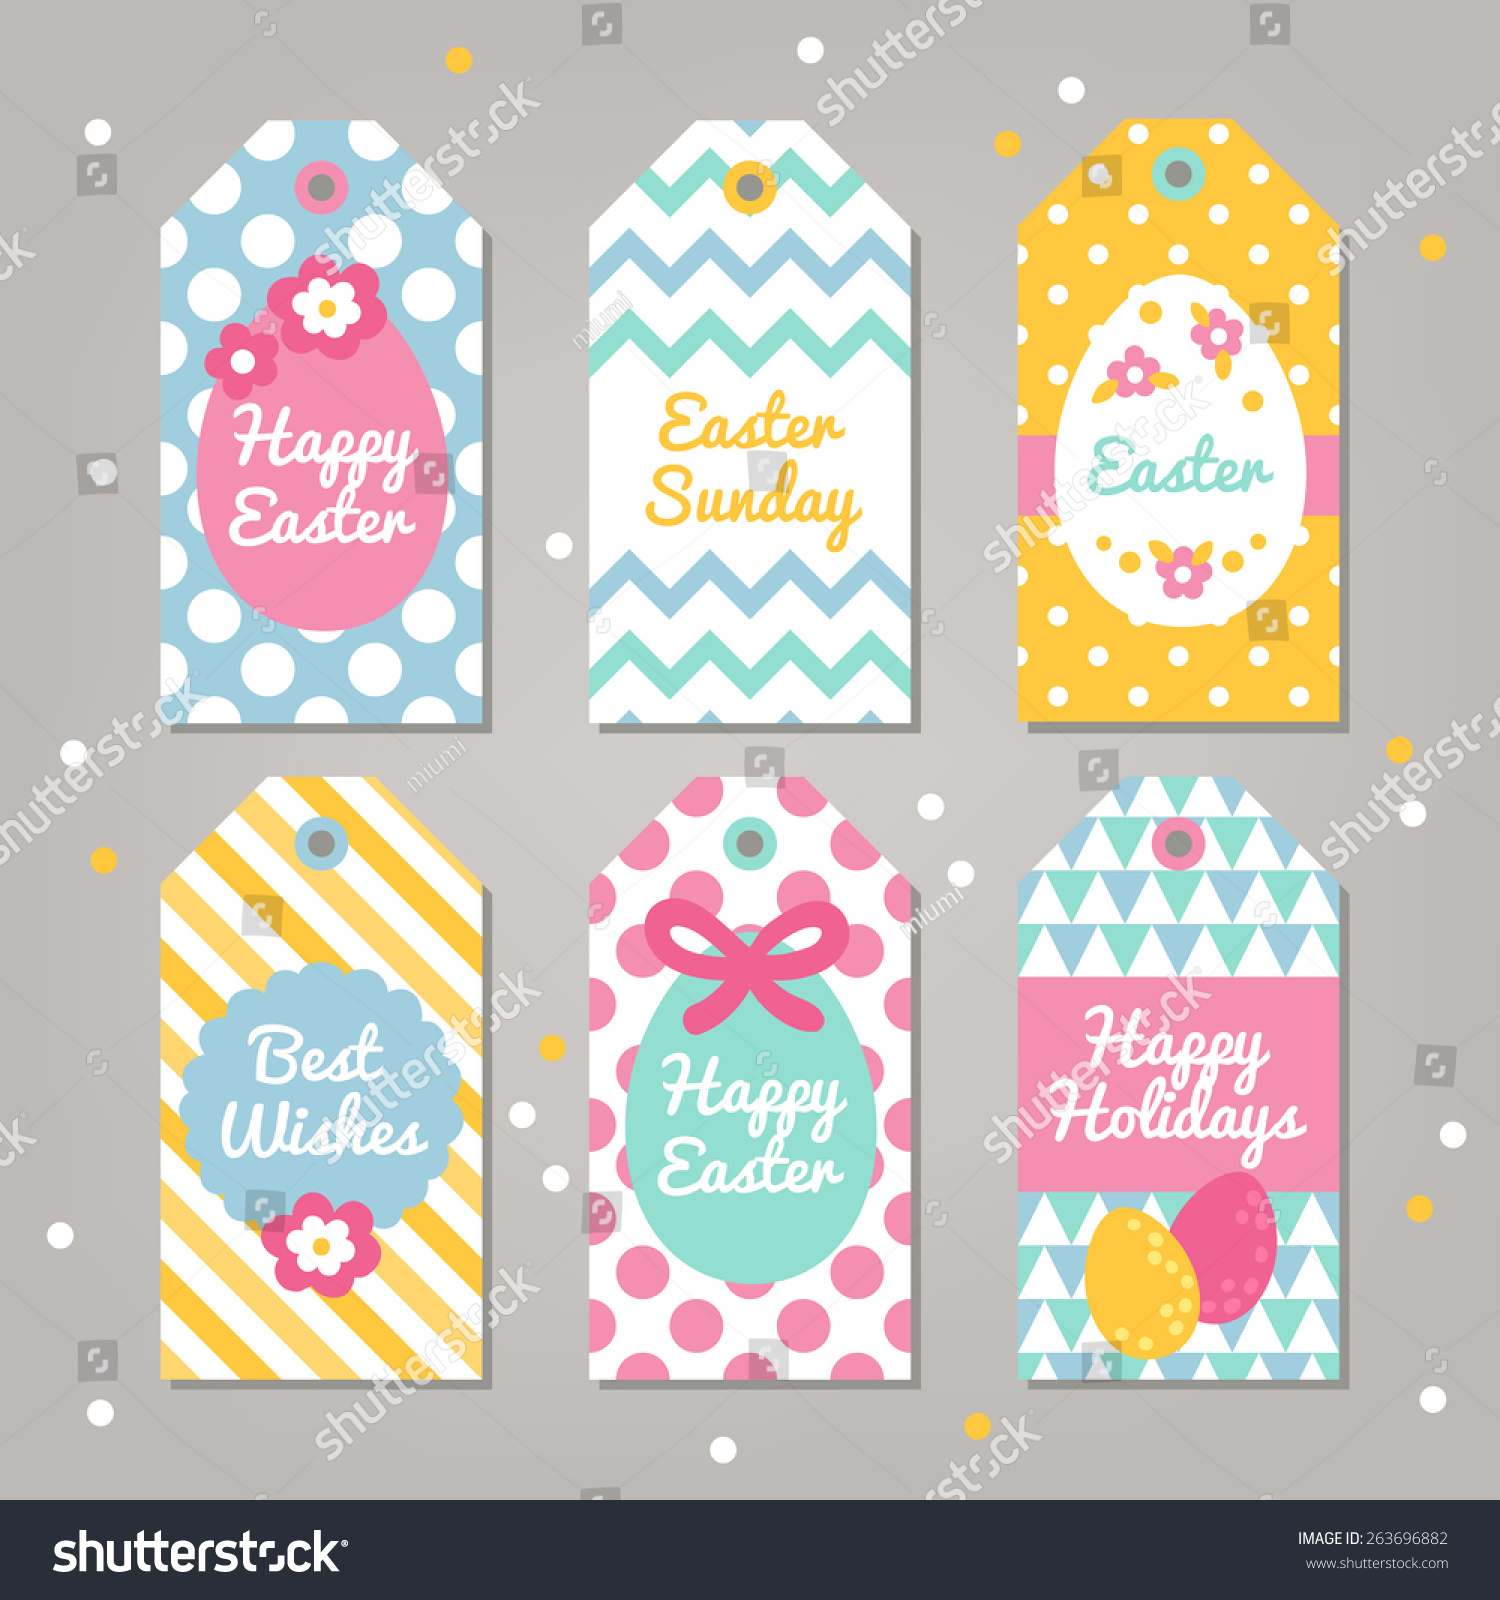 Set easter gift tags polka dot stock vector 263696882 shutterstock set of easter gift tags with polka dot chevron triangles and diagonal stripes patterns negle Choice Image